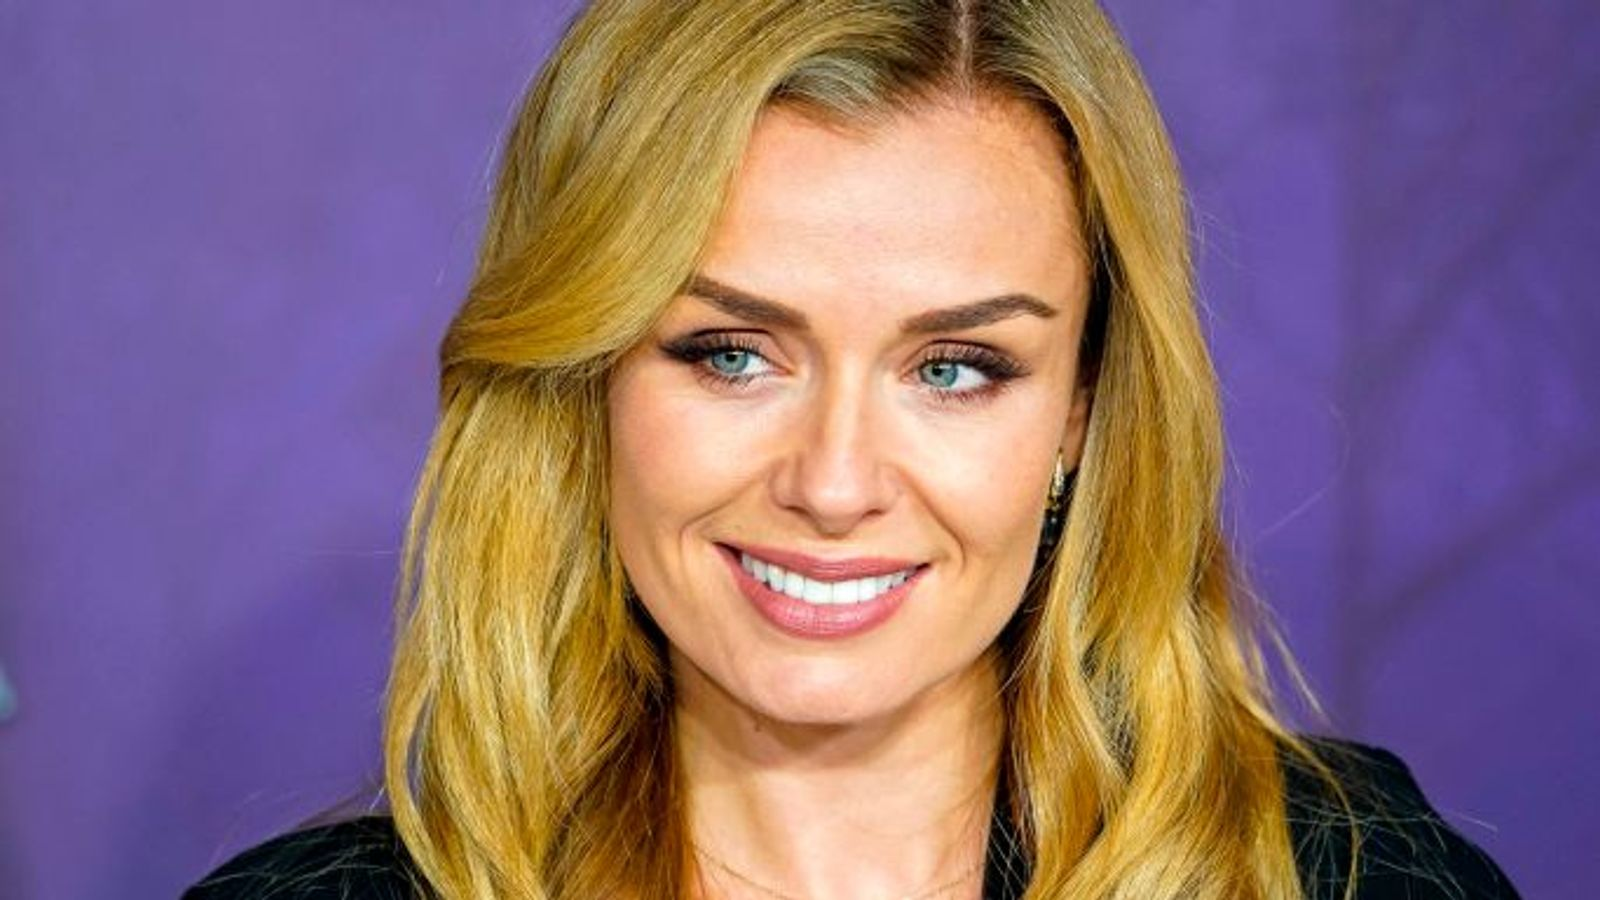 Katherine Jenkins mugged after trying to stop robbery on elderly woman